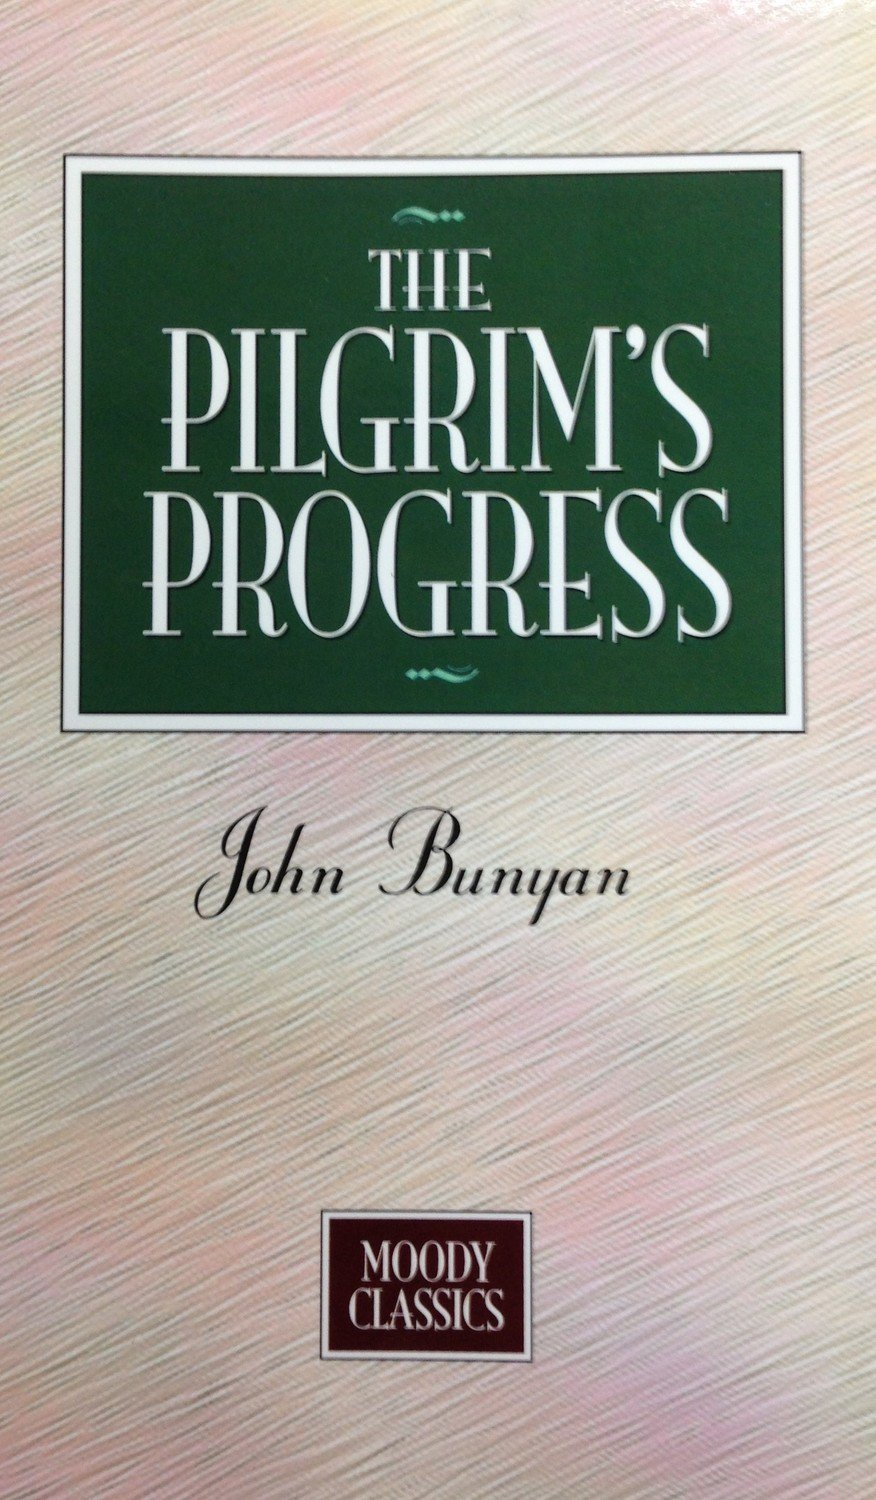 The Pilgrim's Progress by John Bunyan (Small paperback)